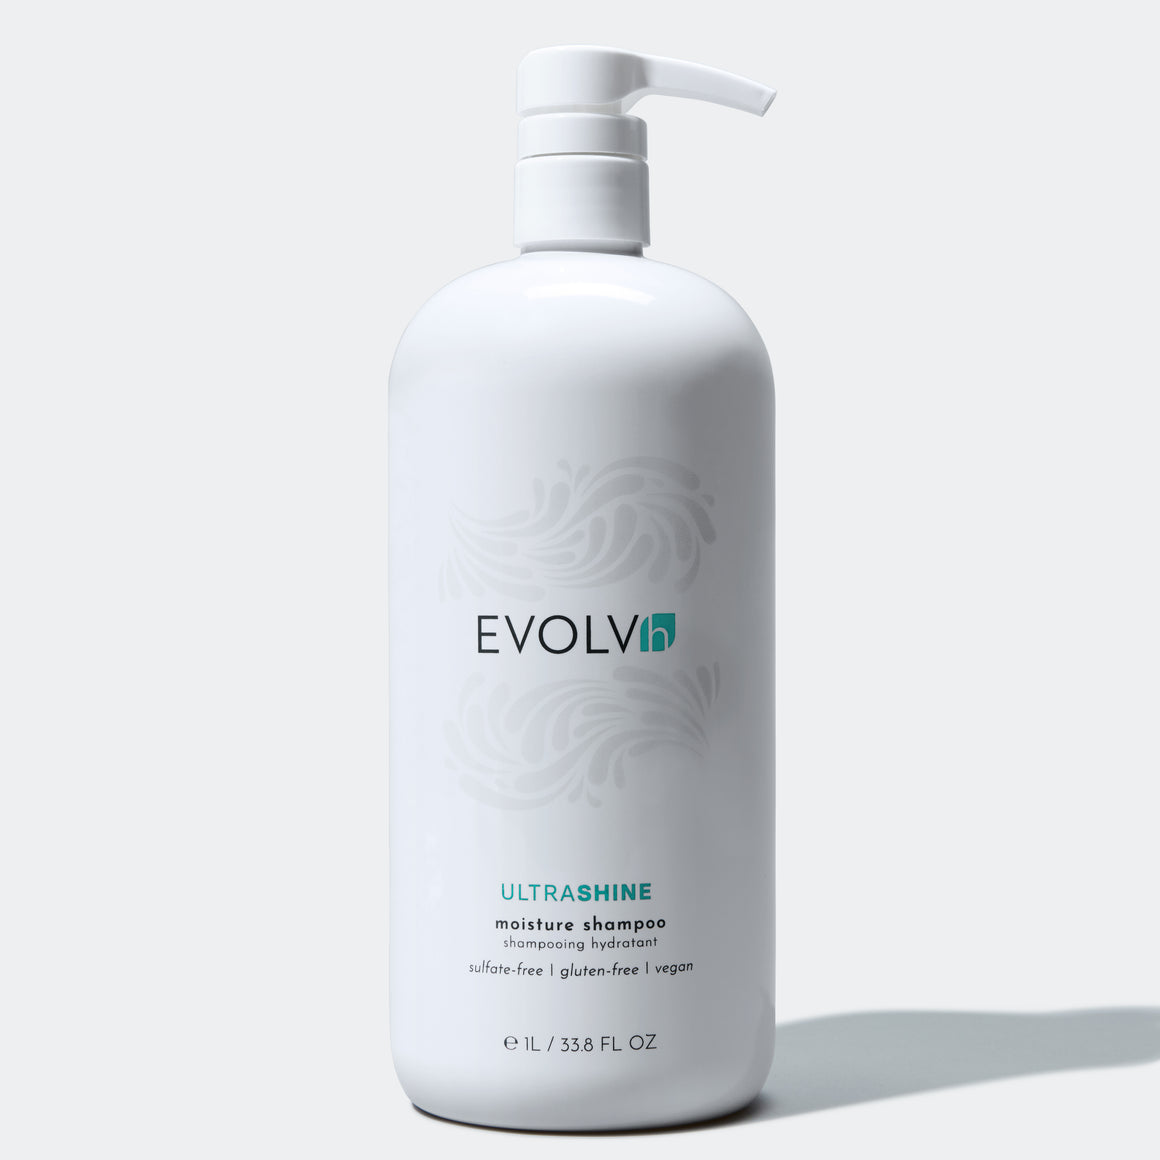 Best value size clean beauty shampoo for healthy shine, softness, smoothness